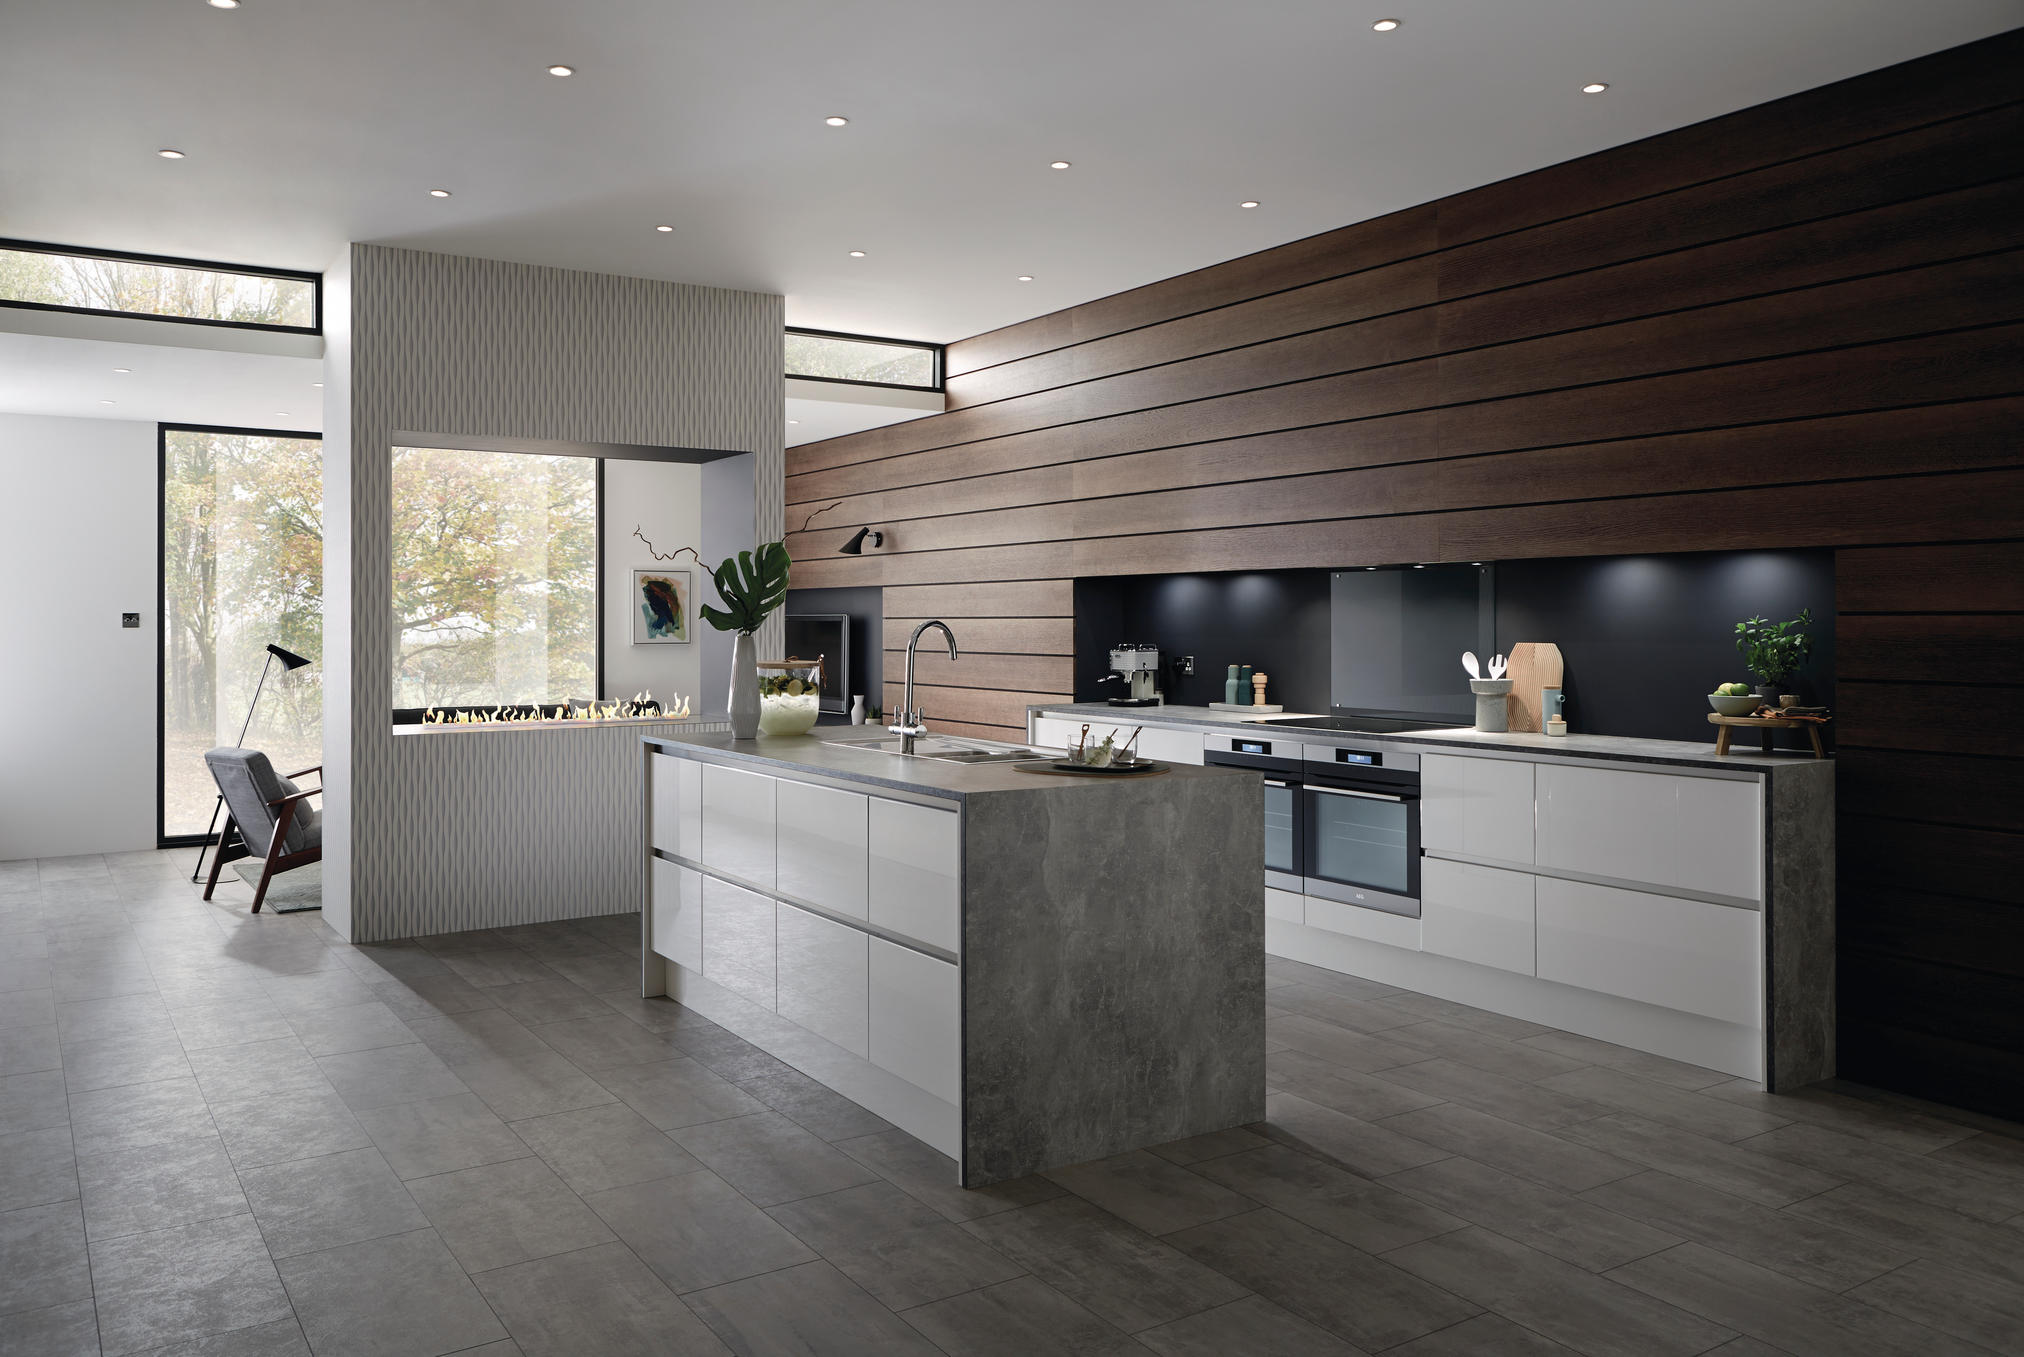 Howdens Joinery - Altrincham